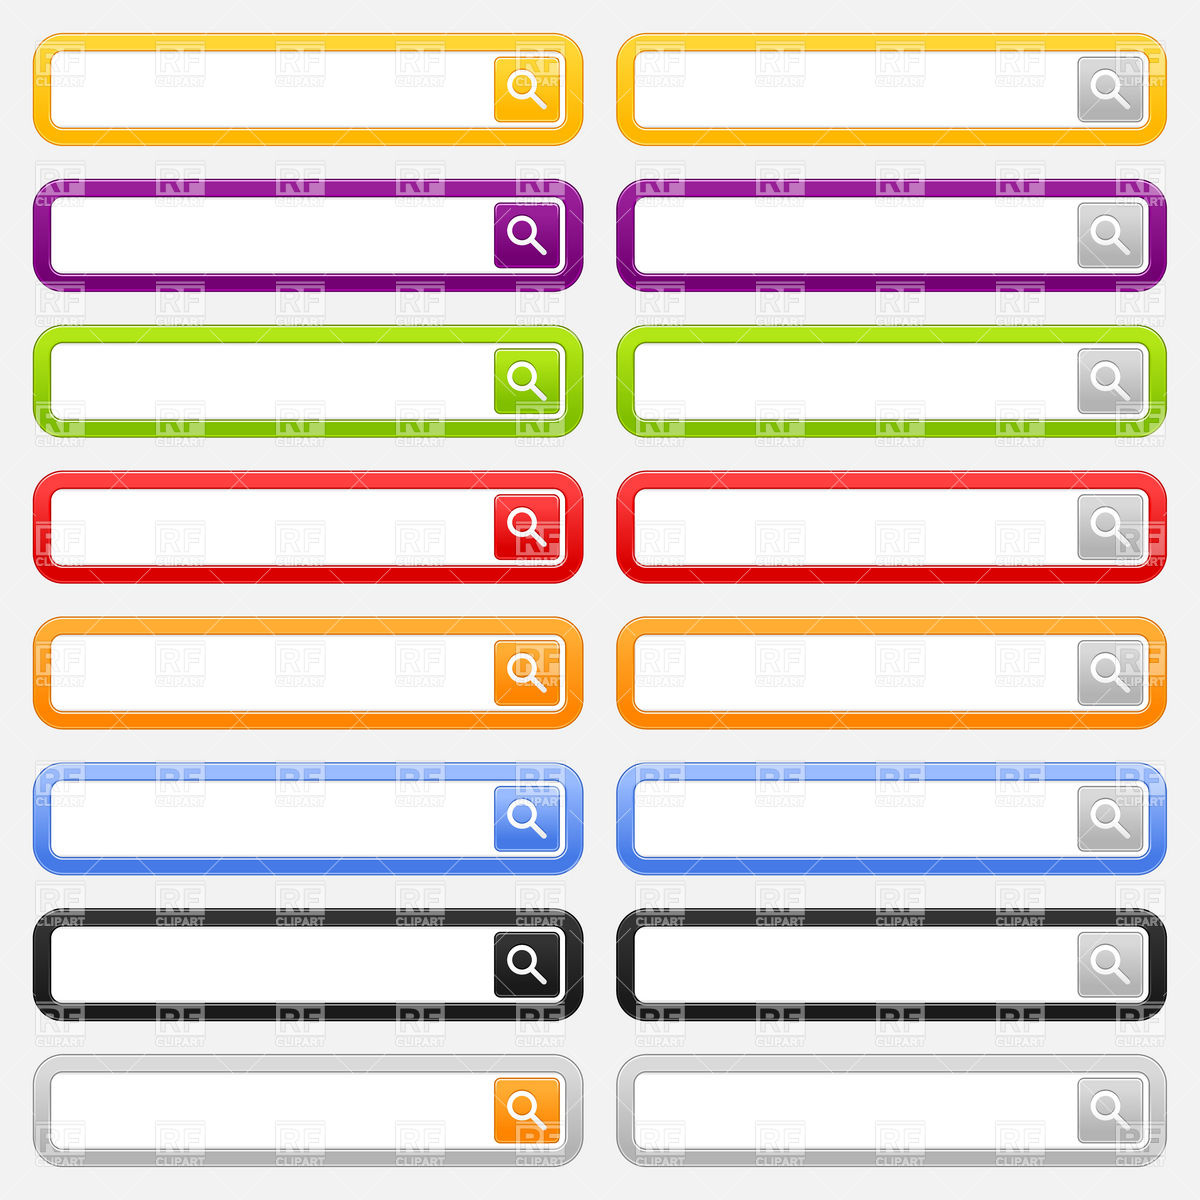 Search bar clipart jpg free library Clip Art for Free Search Bar – Clipart Free Download jpg free library